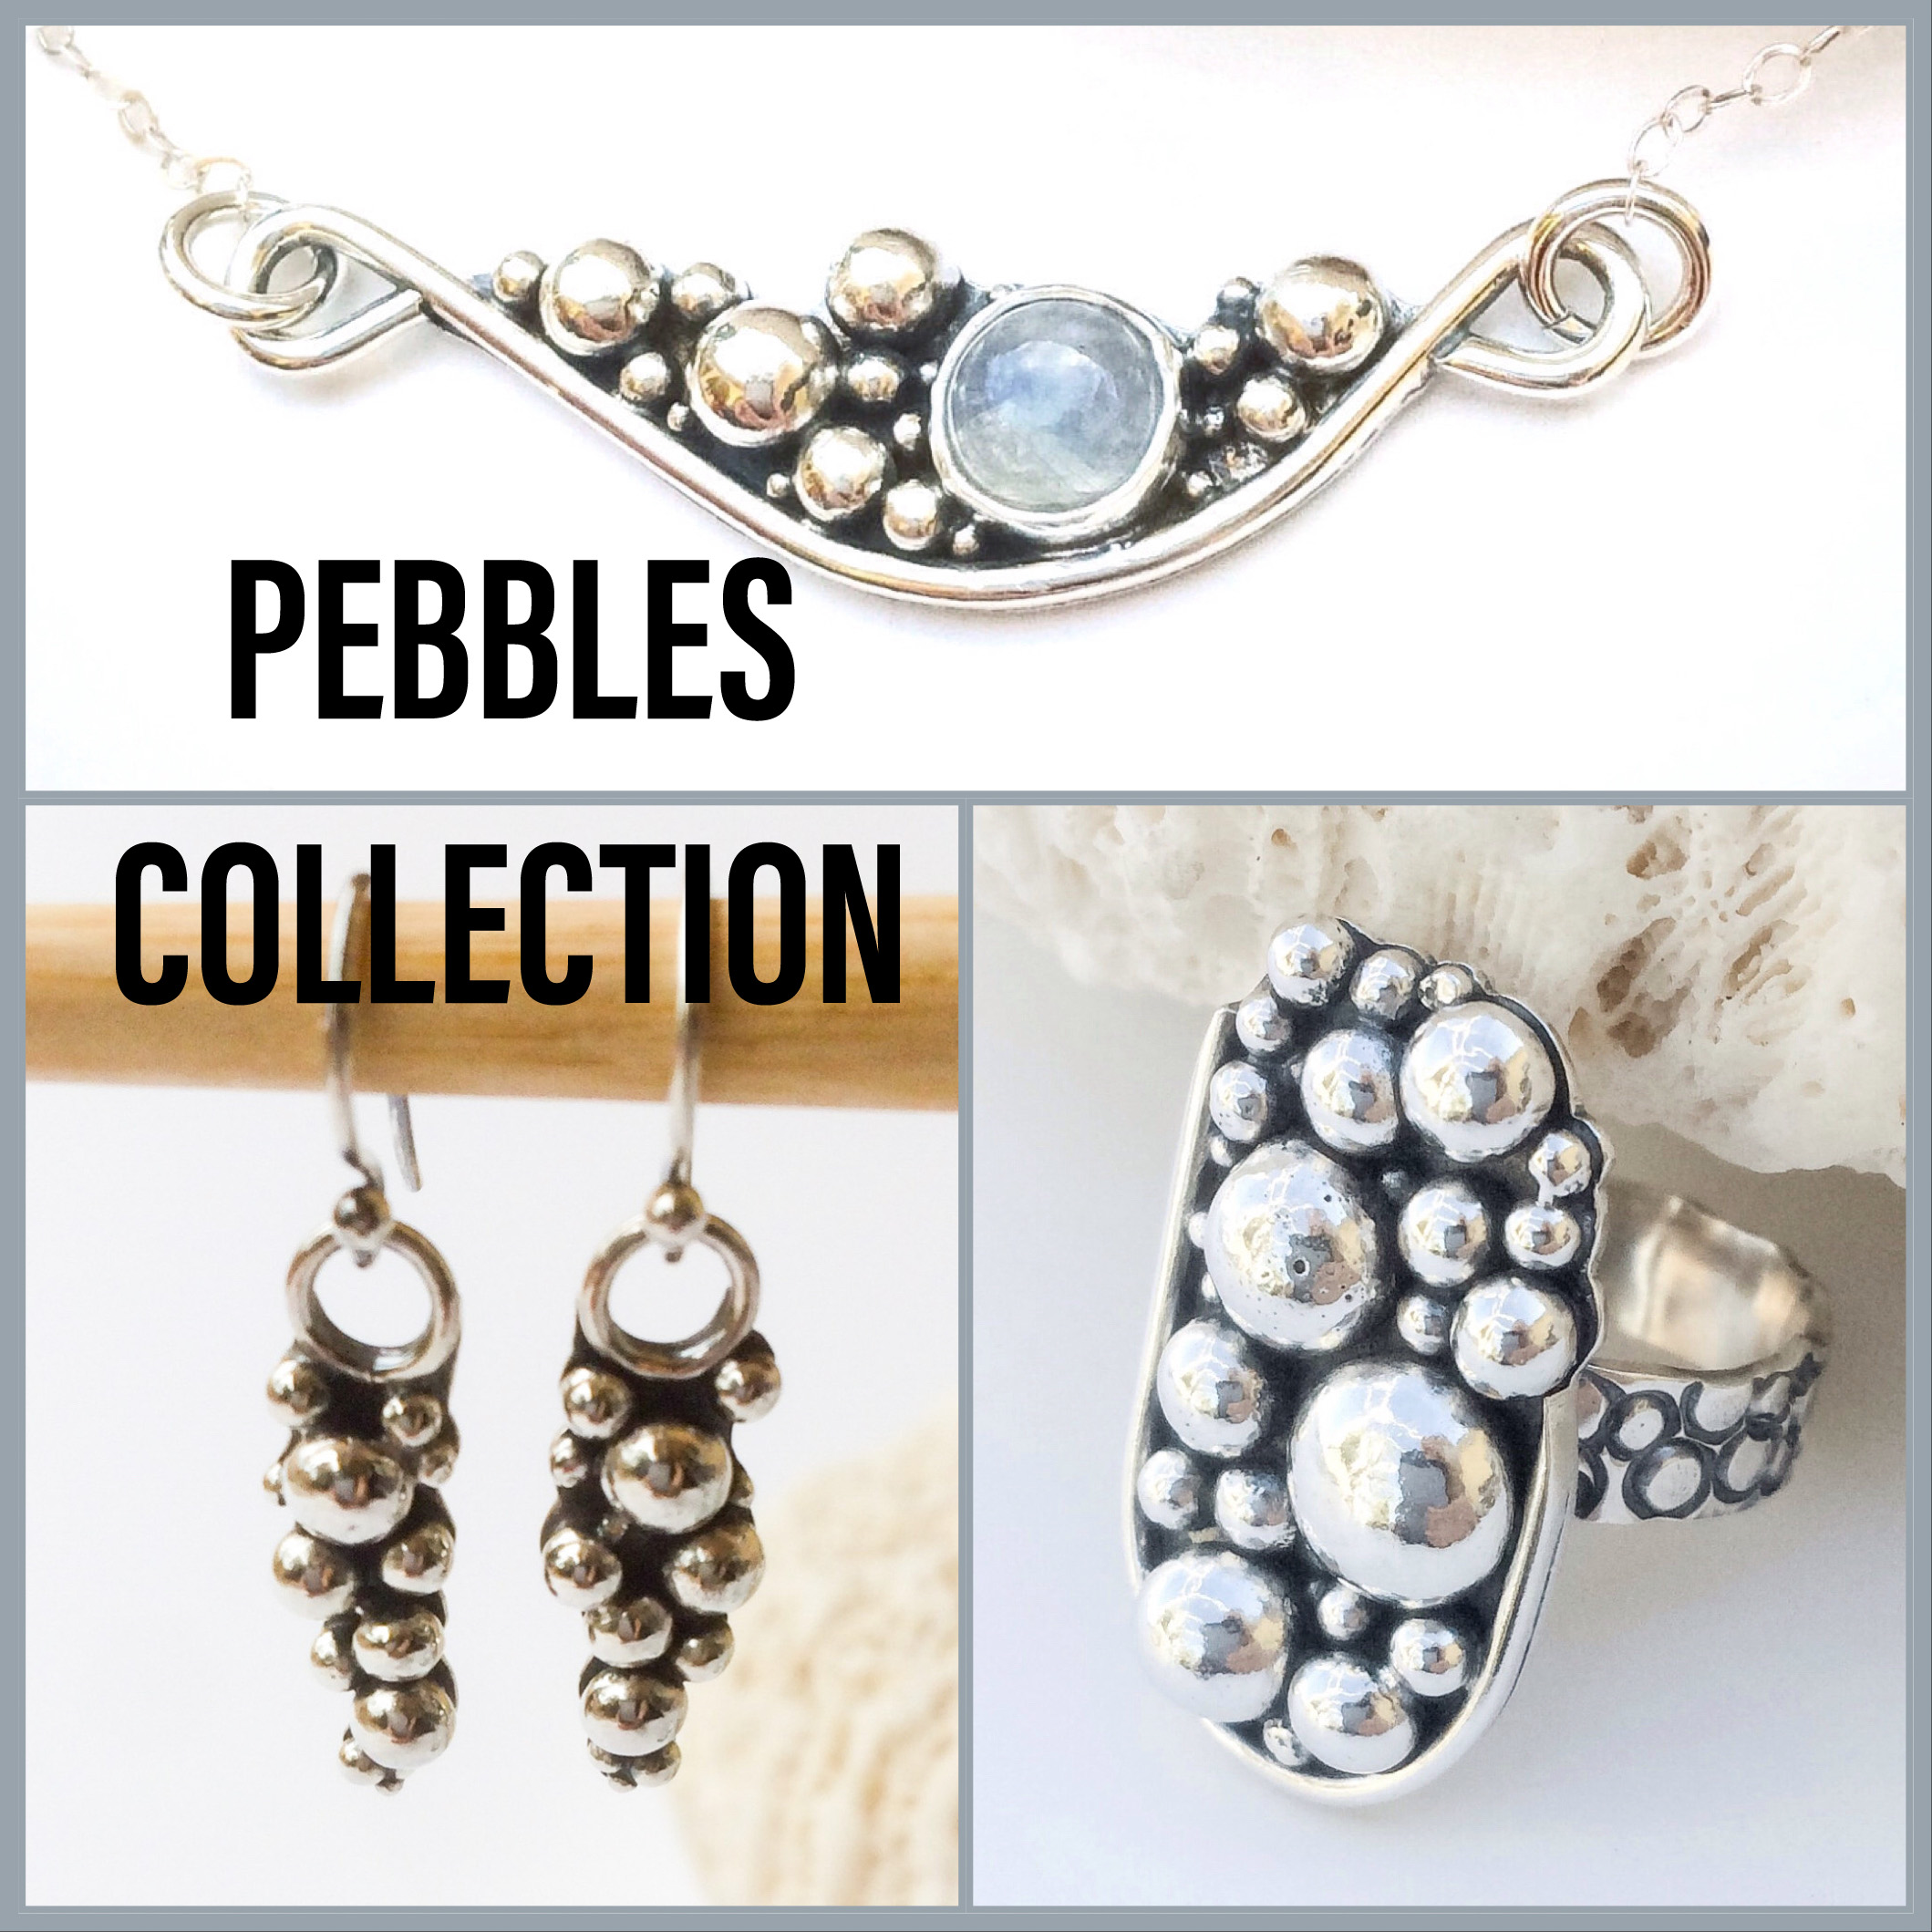 Pebbles Collection Jewelry